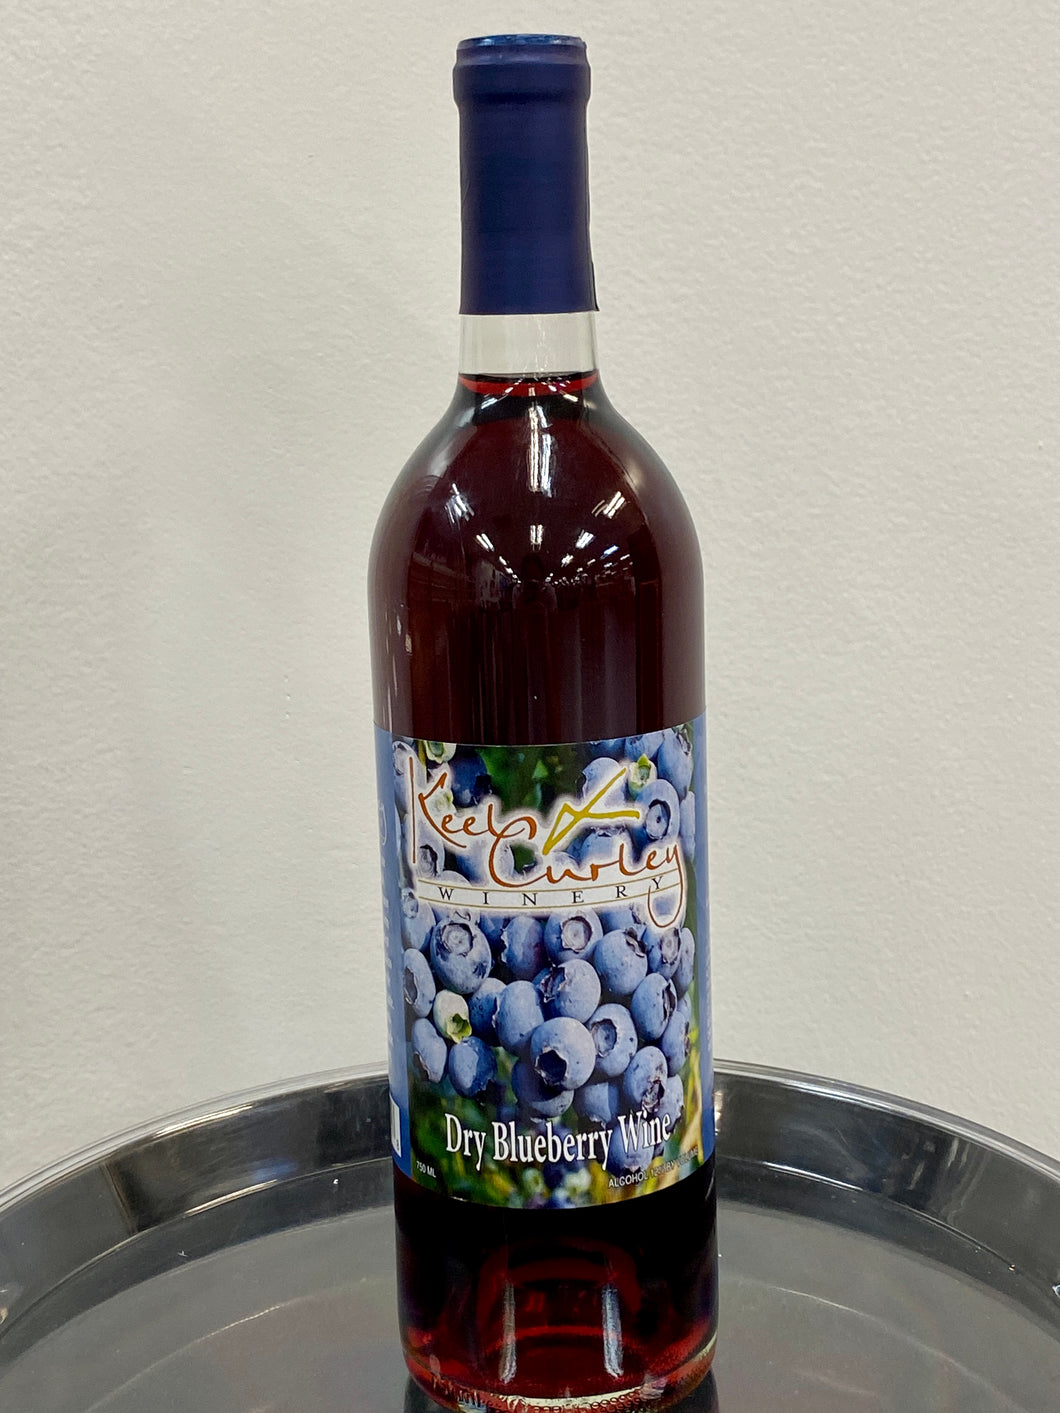 Dry Blueberry Wine